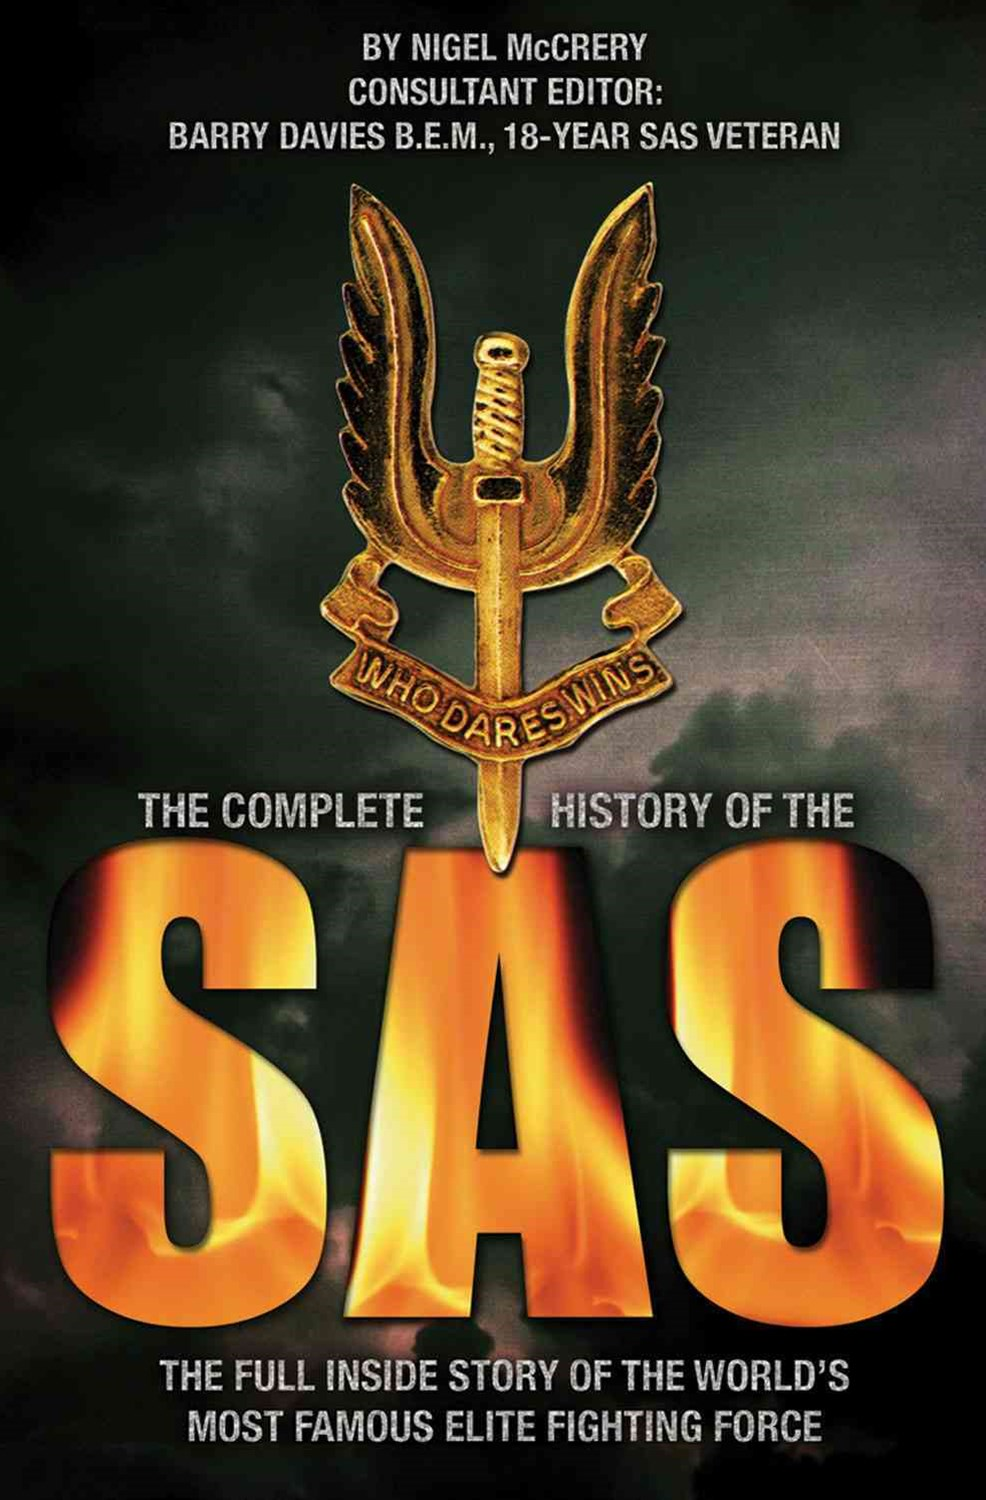 Complete History of the SAS